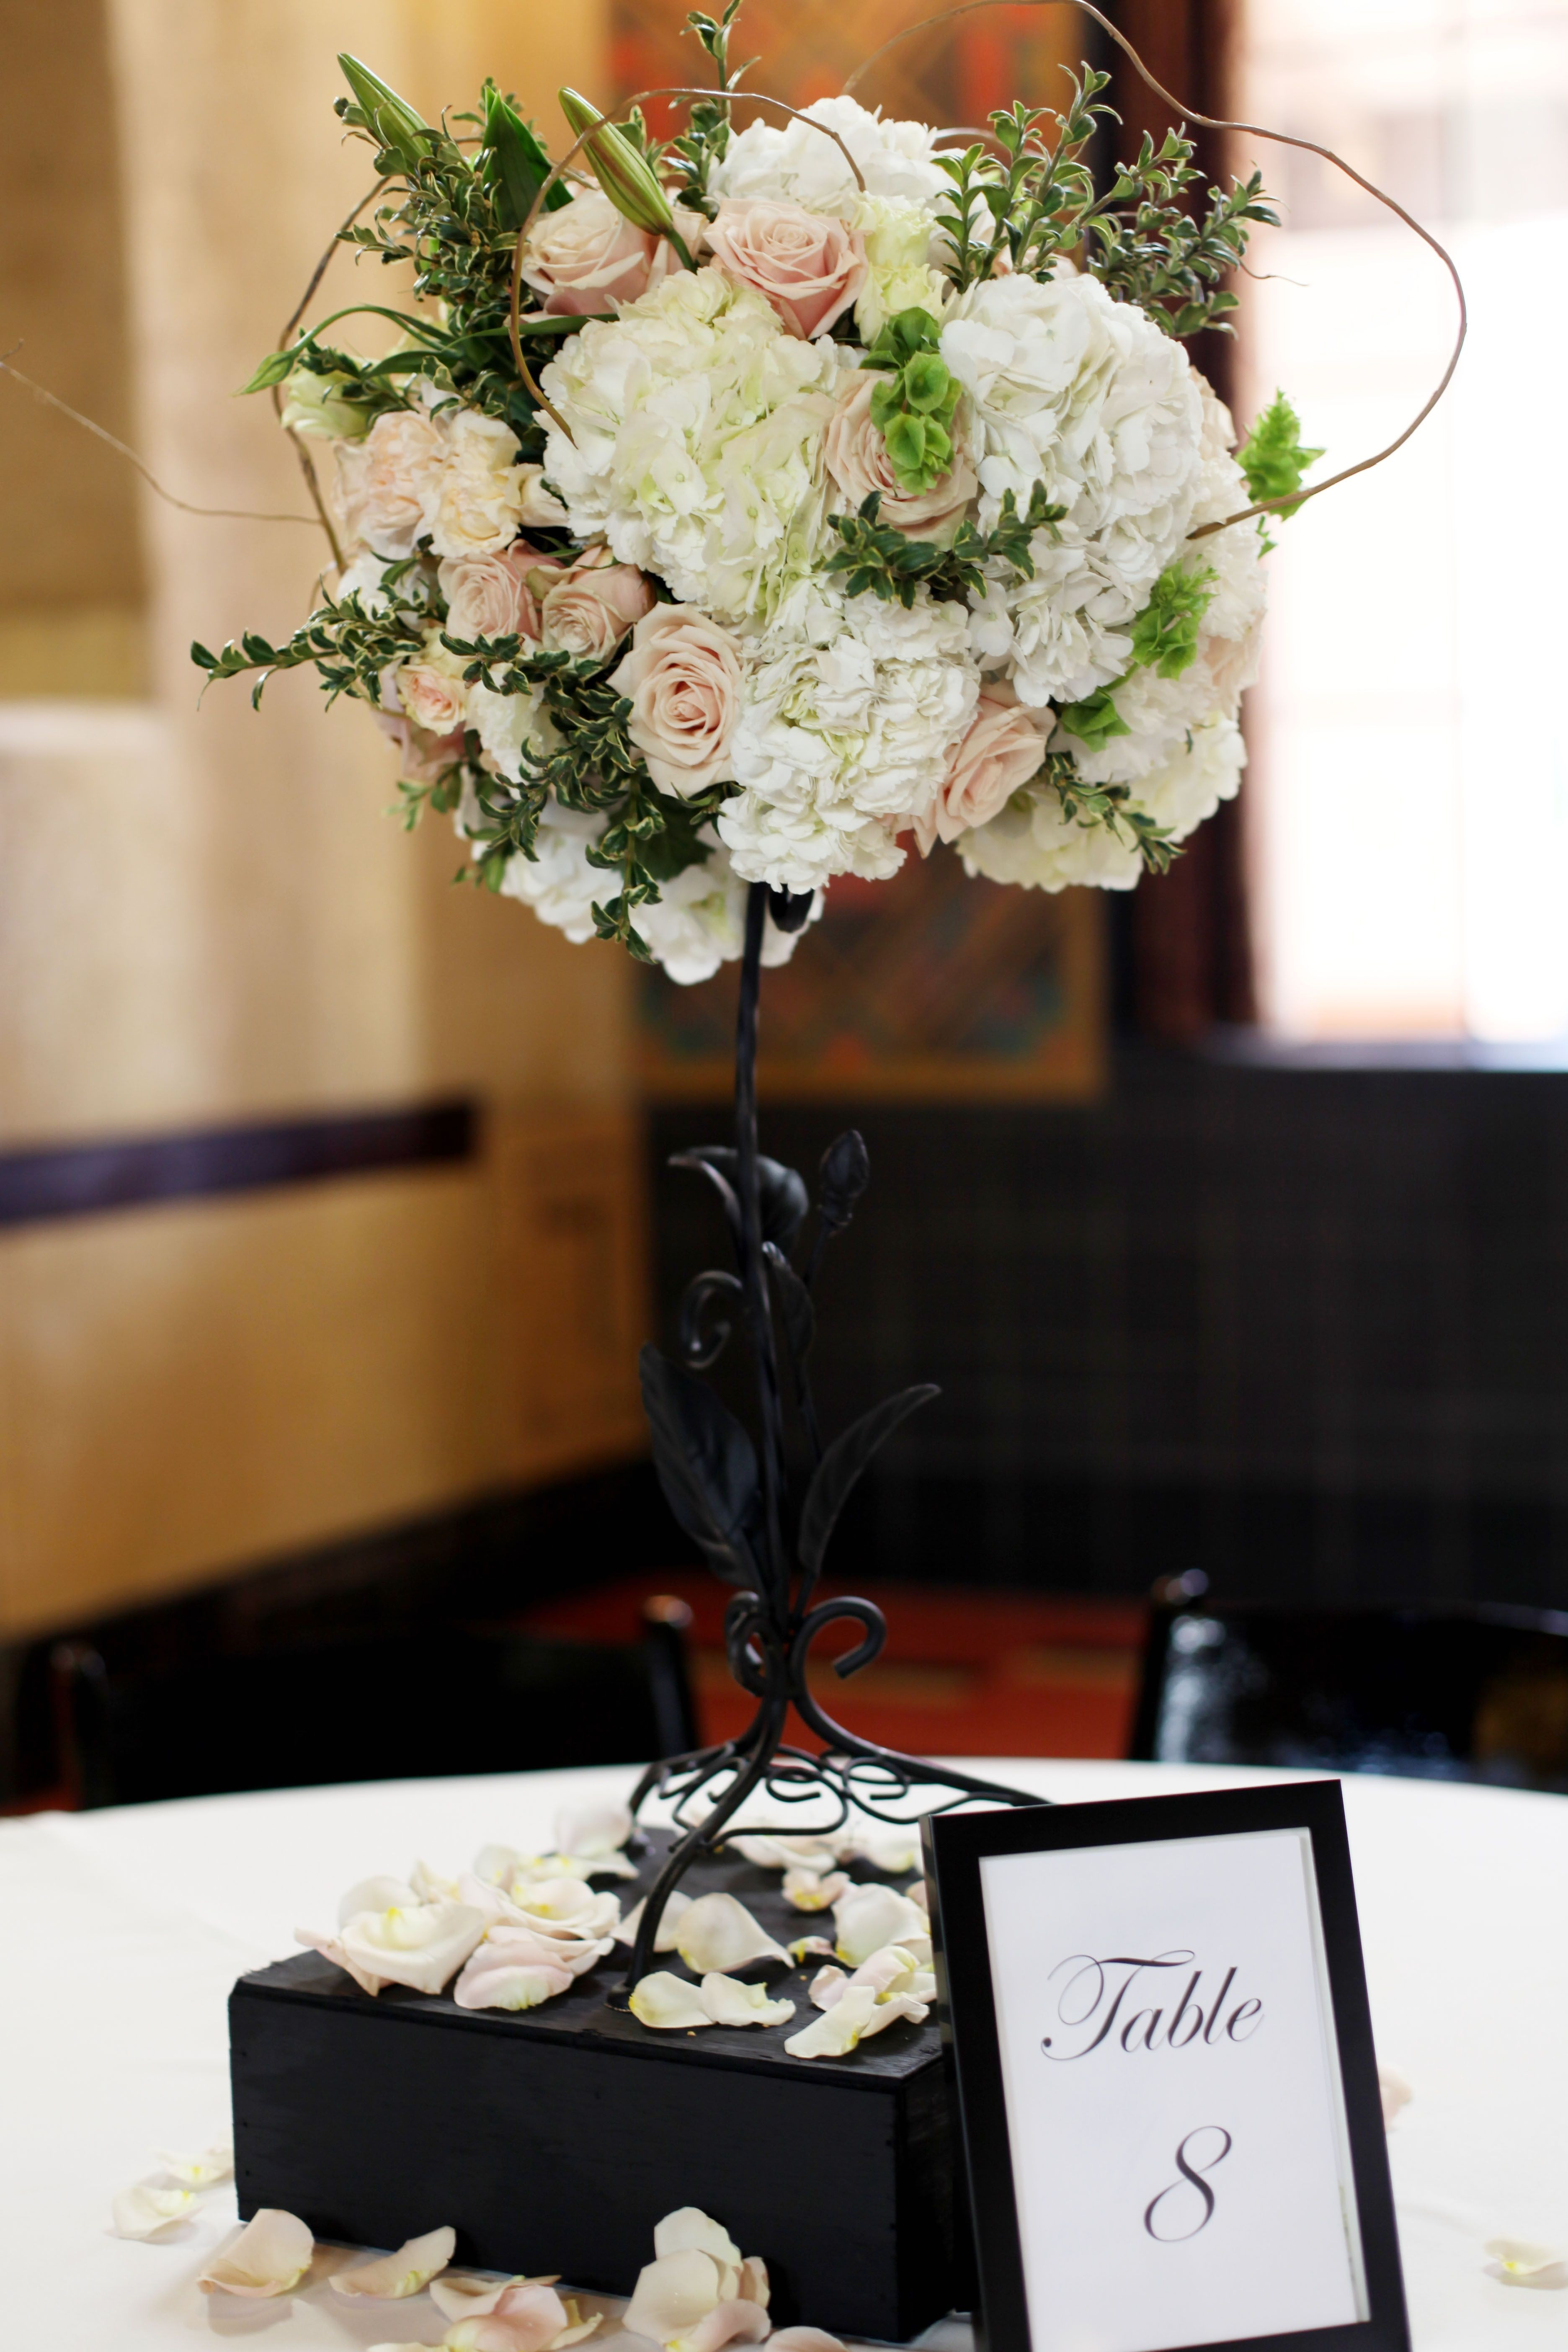 tall floor vase arrangements of decorative branches for weddings awesome tall vase centerpiece ideas with decorative branches for weddings luxury union station the little branch of decorative branches for weddings decorative